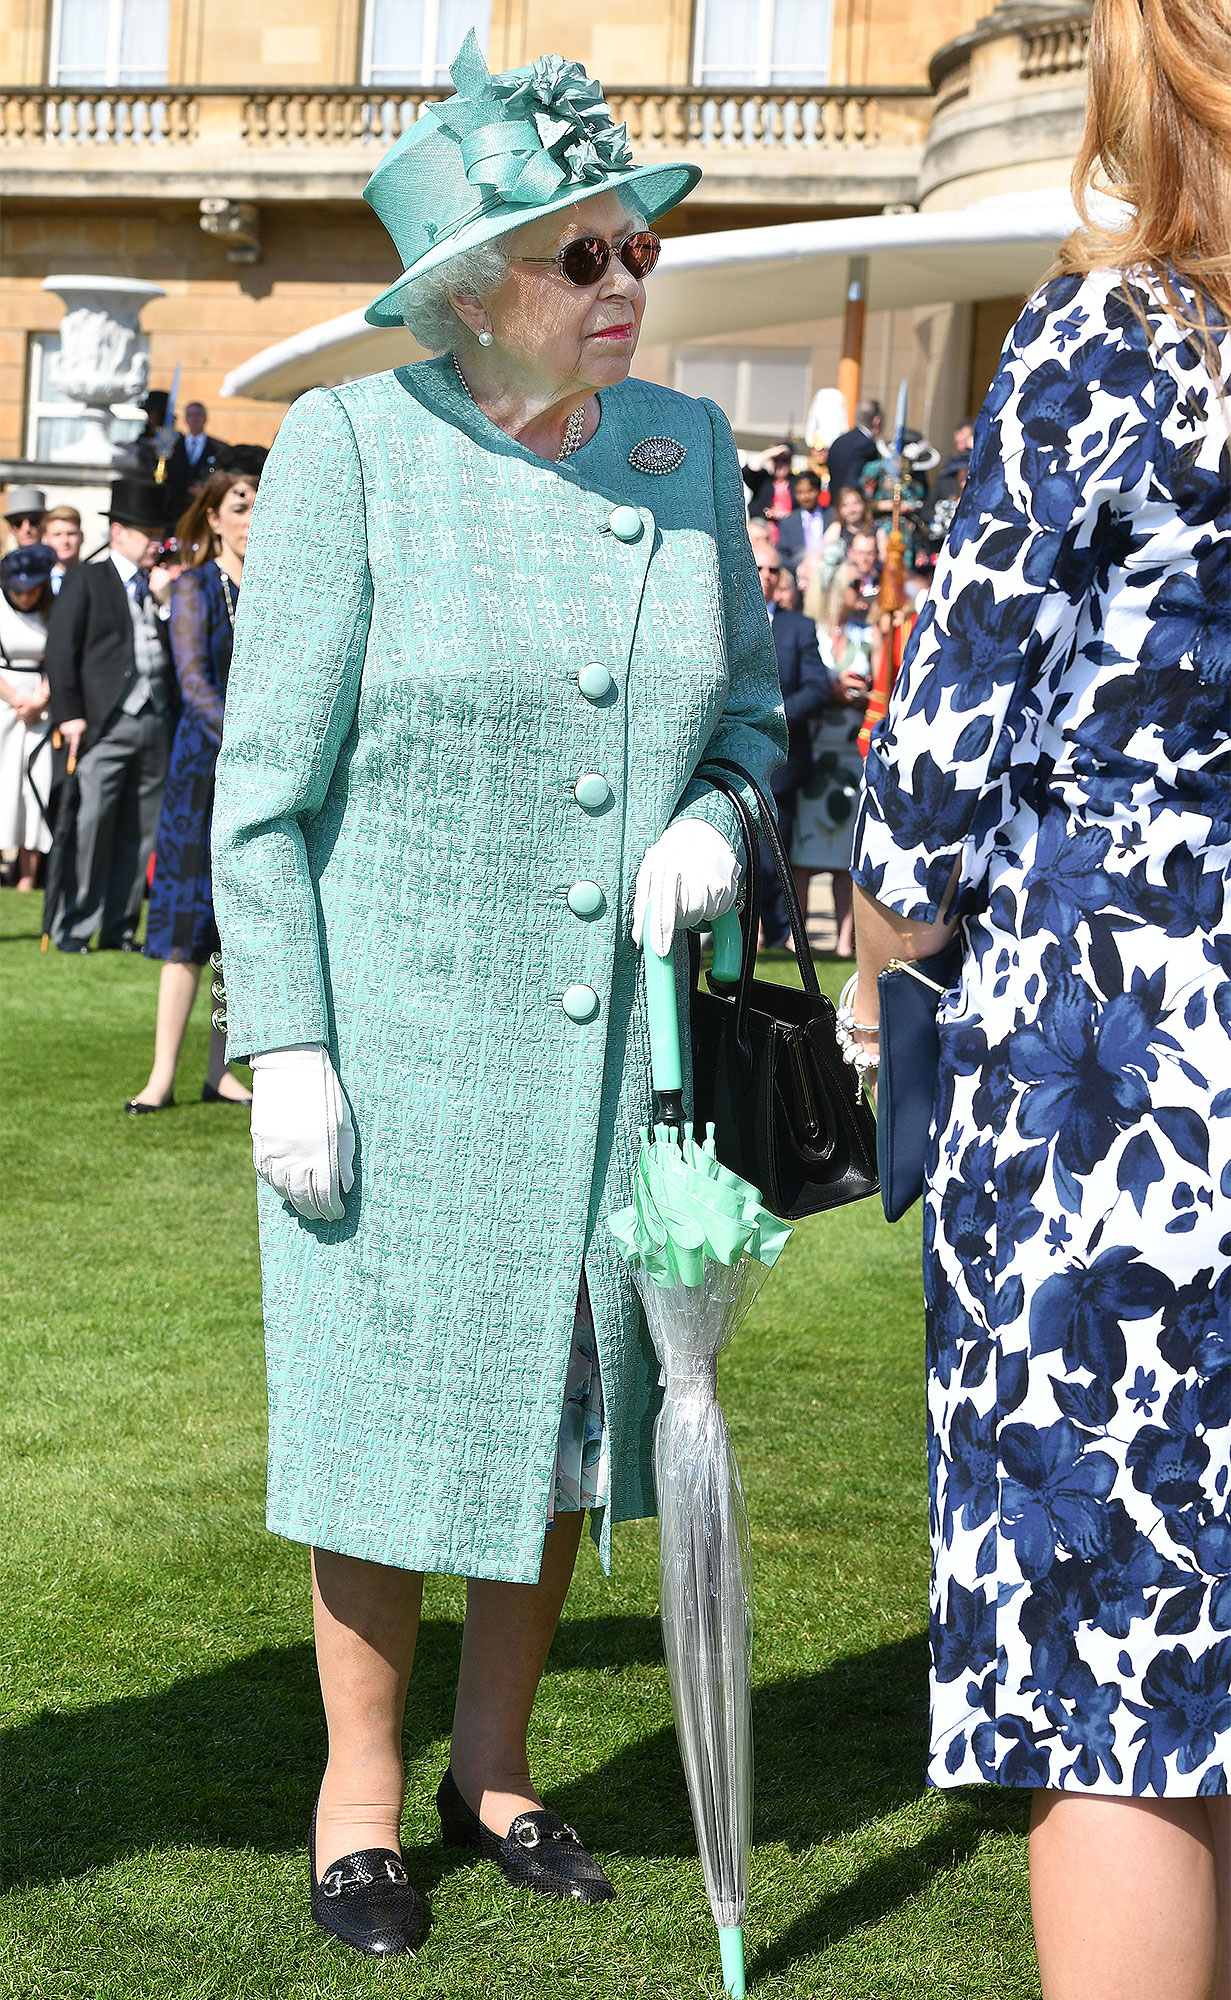 Buckingham Palace Garden Party, London, UK - 15 May 2018